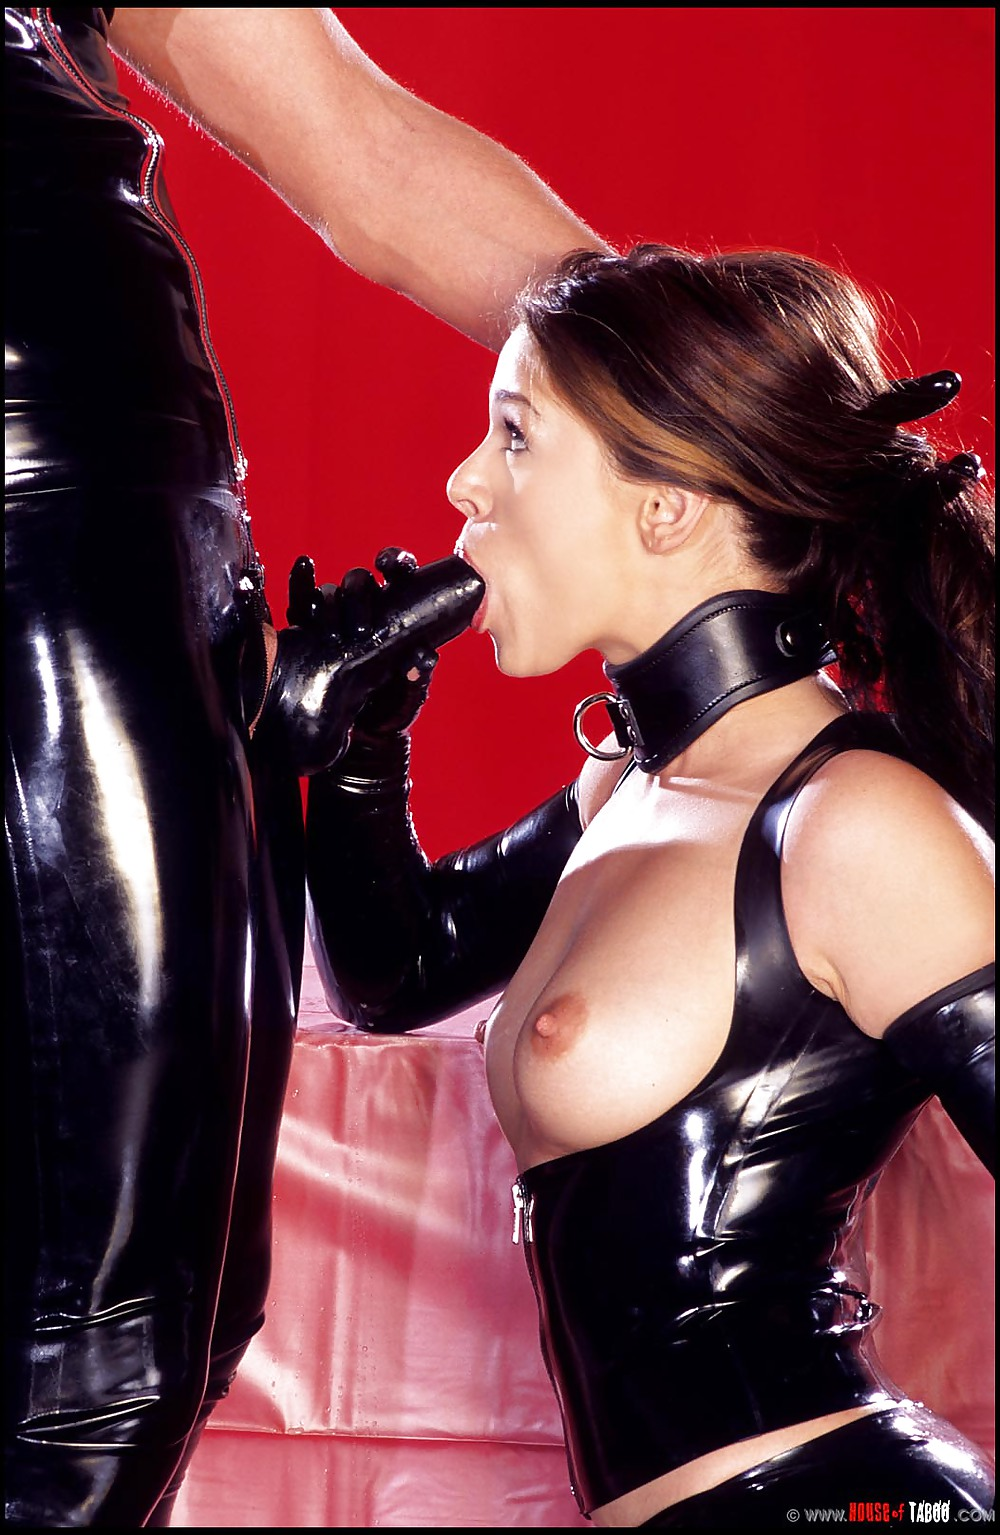 Lovers in latex natalia forest, tegan jane sex and domination between lesbians